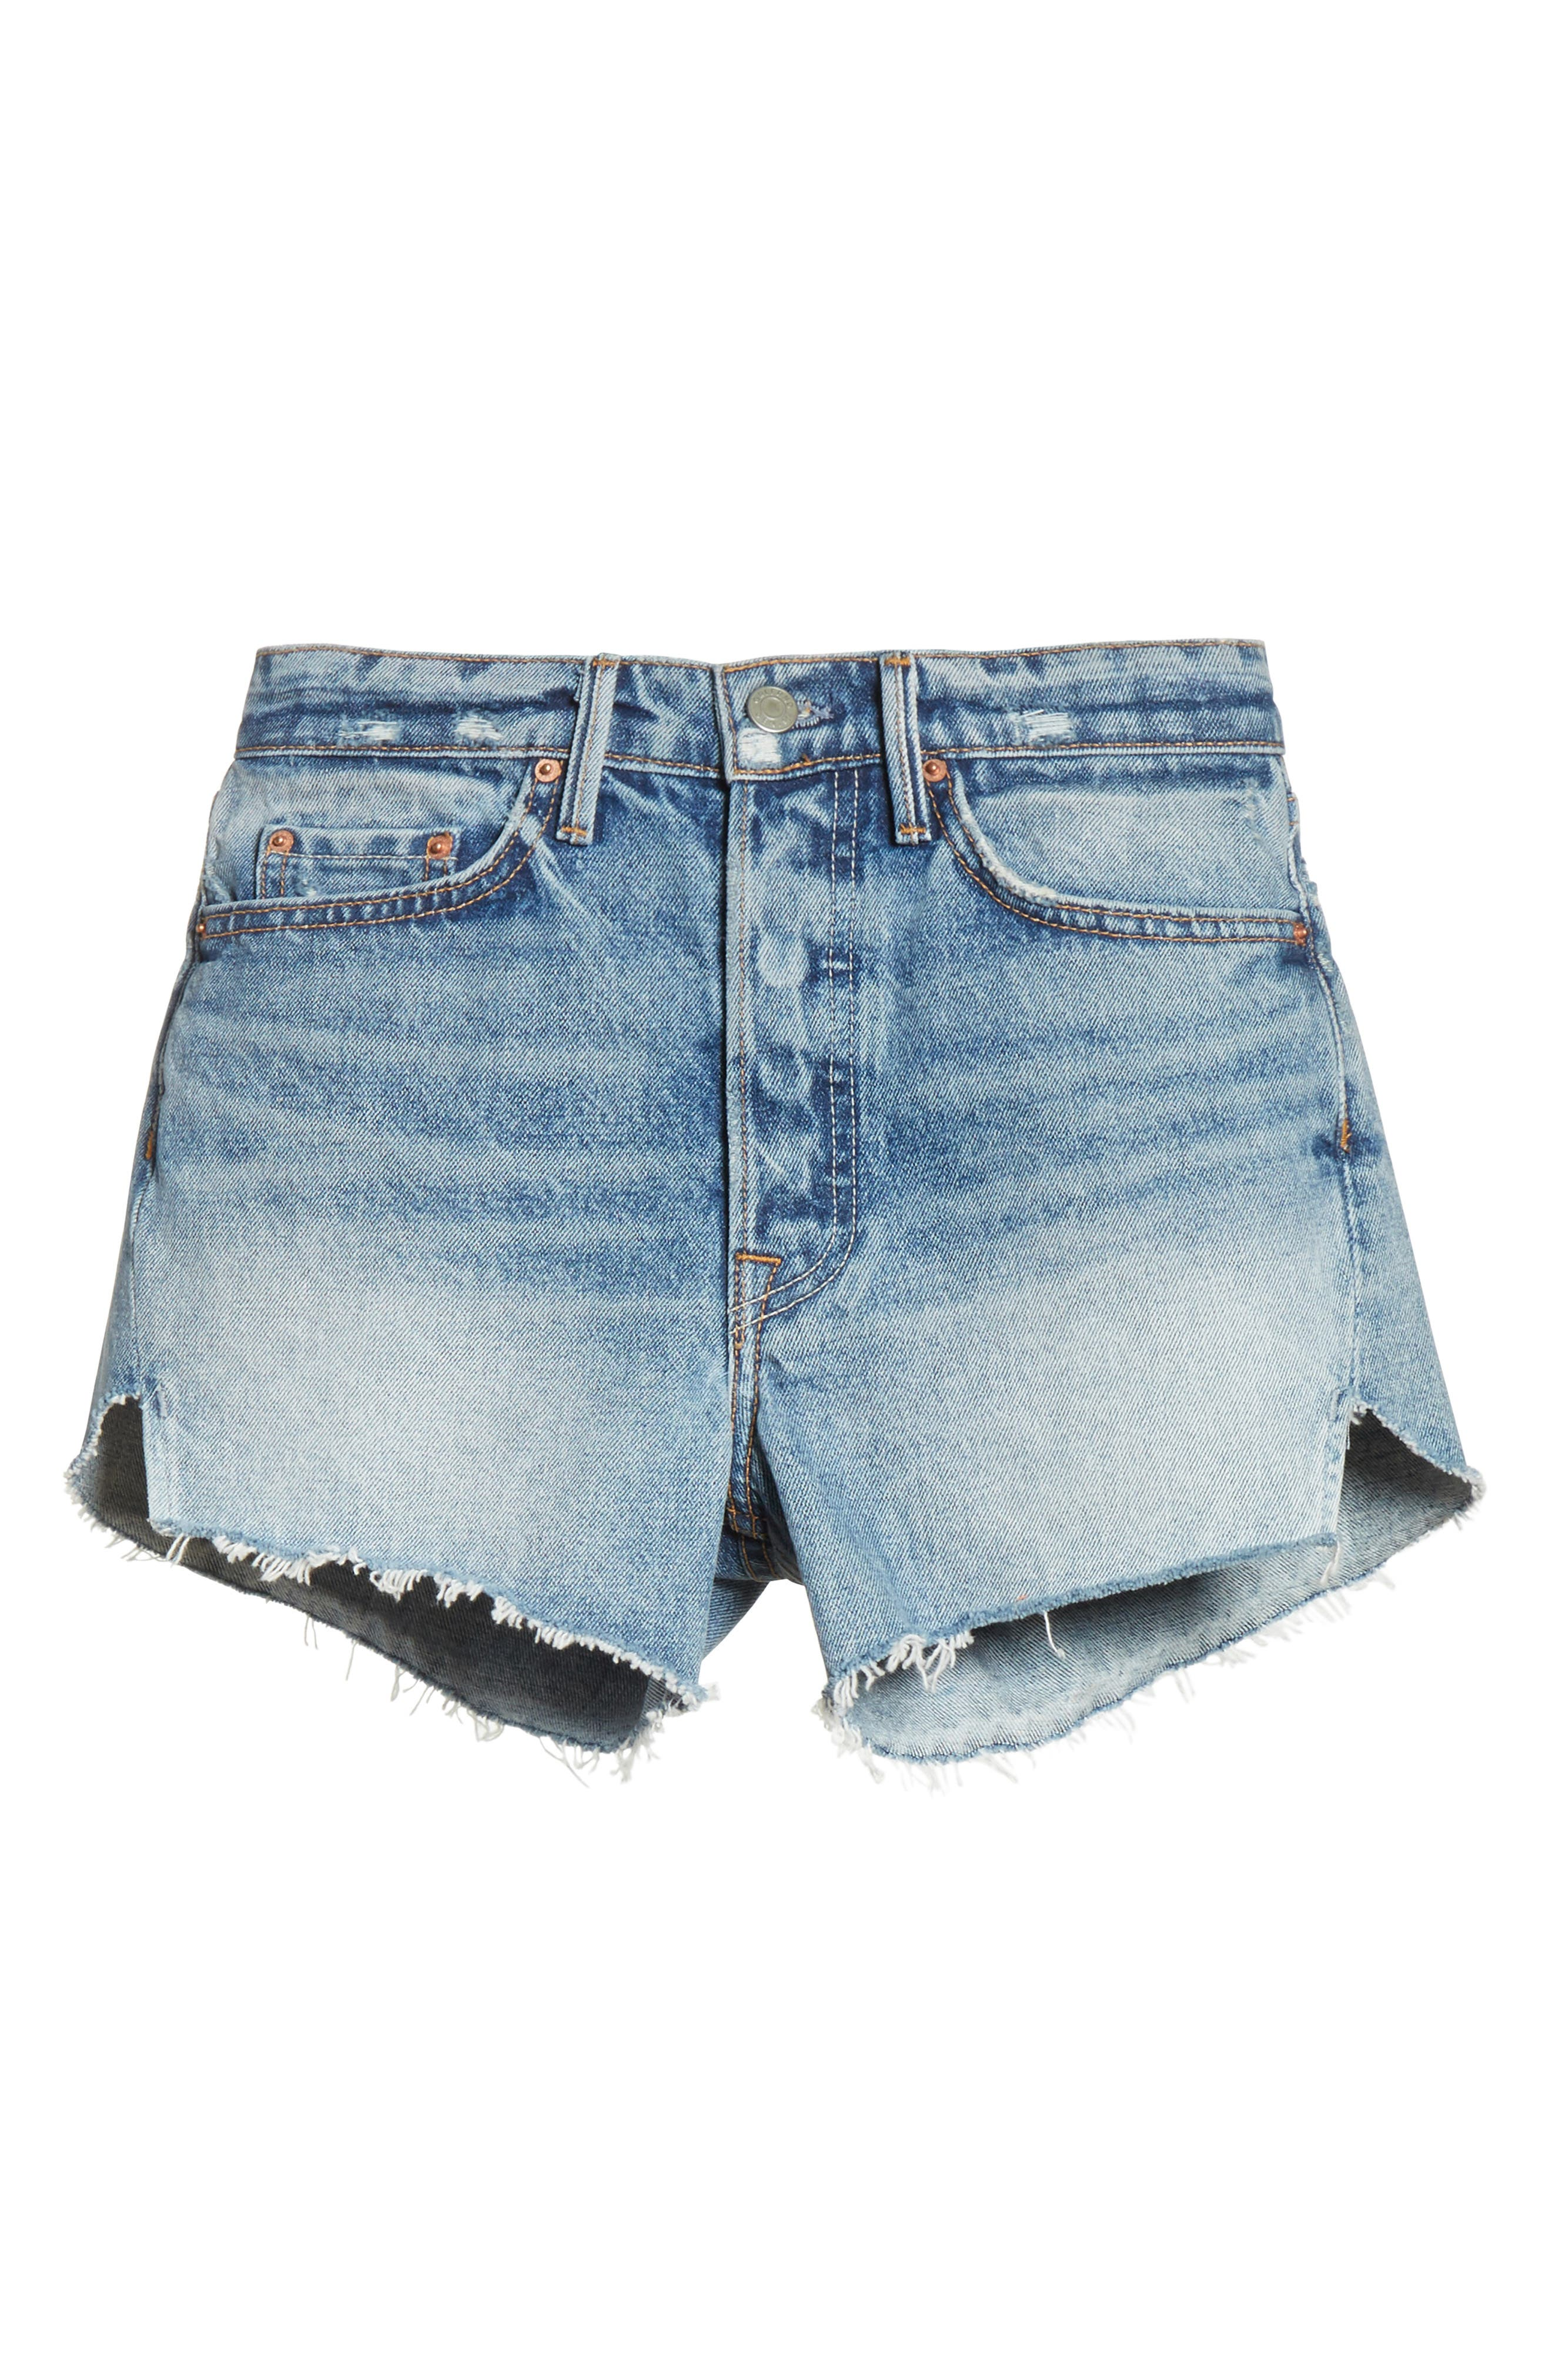 Mardee Denim Shorts,                             Alternate thumbnail 6, color,                             Twisted